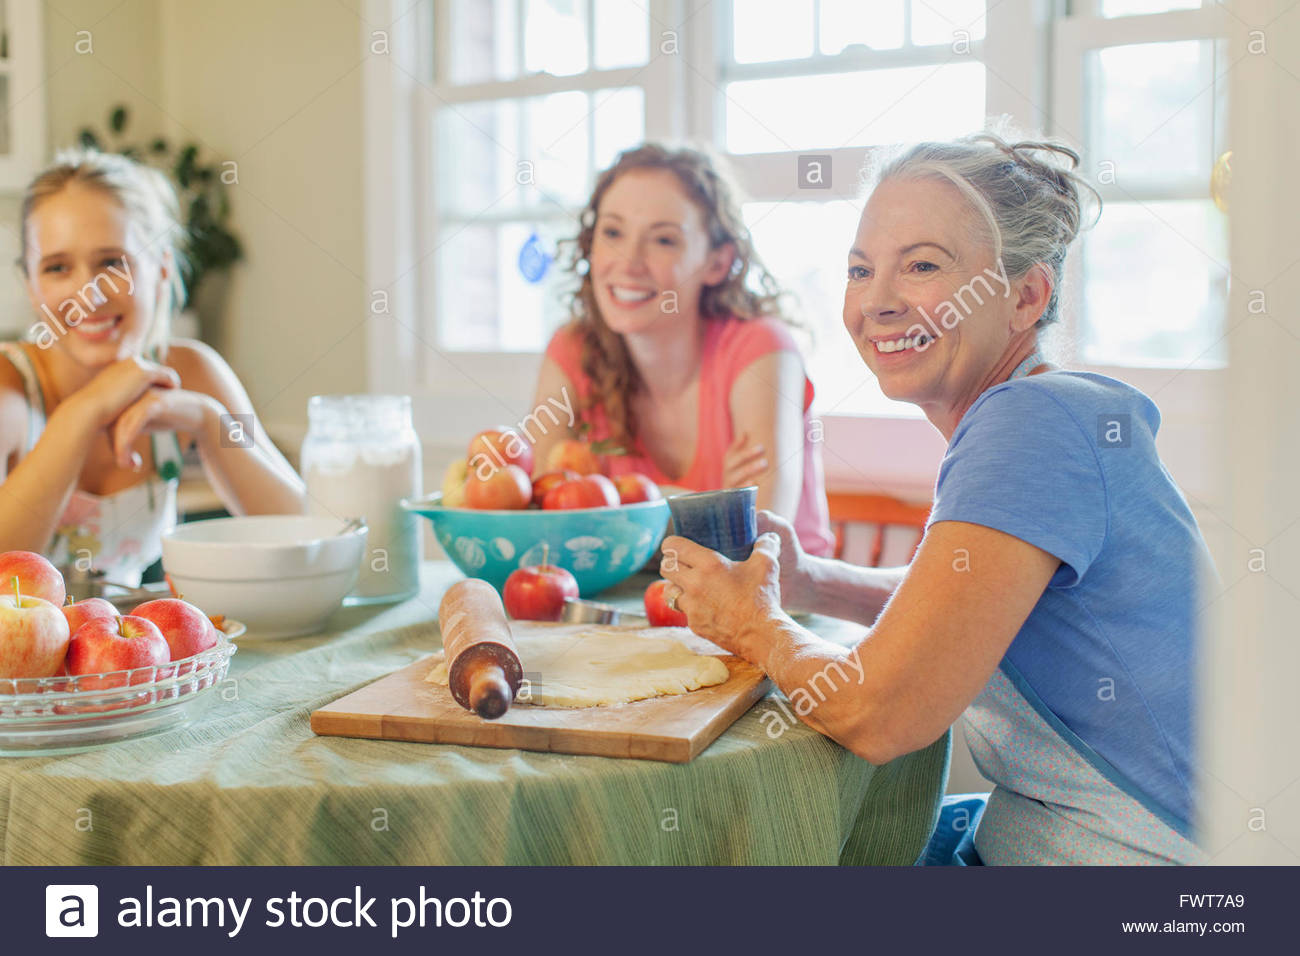 Mother and daughters taking a break from making pies. - Stock Image